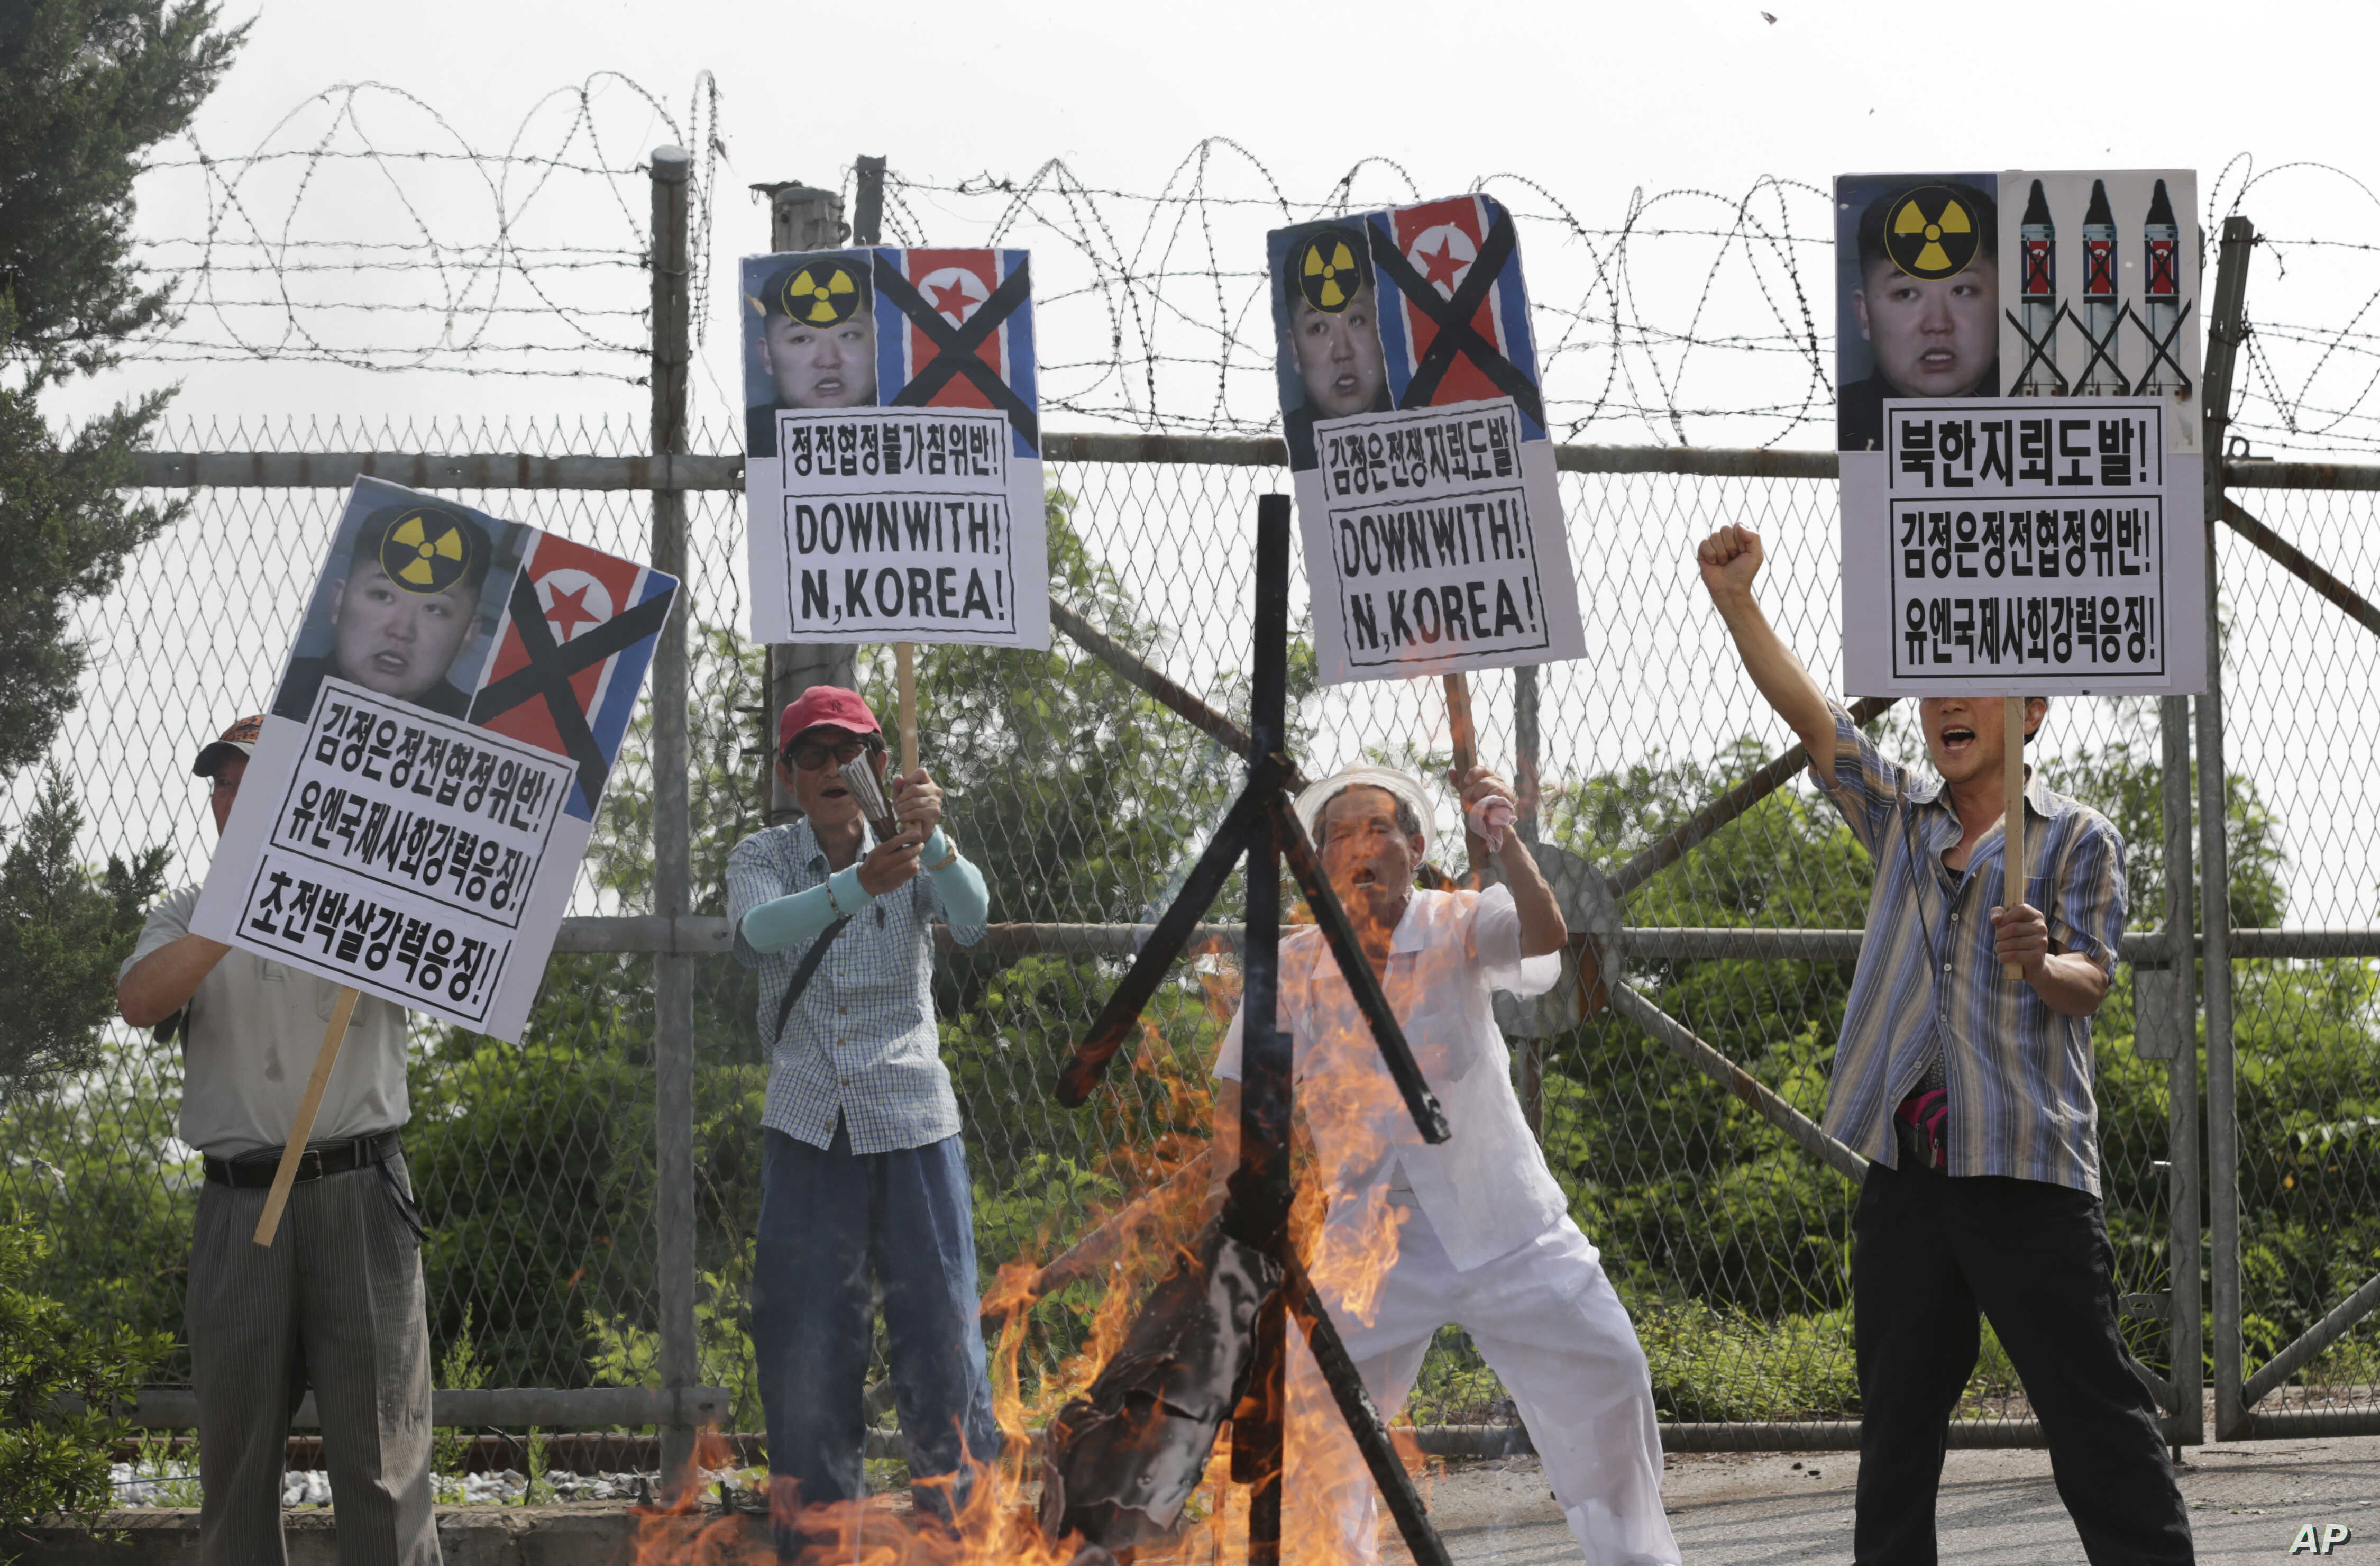 Members of South Korean conservative group shout slogans after burning an effigy of North Korean leader Kim Jong Un and North Korea's flag during a rally denouncing the North Korea at the Imjingak Pavilion near the border village of Panmunjom, which